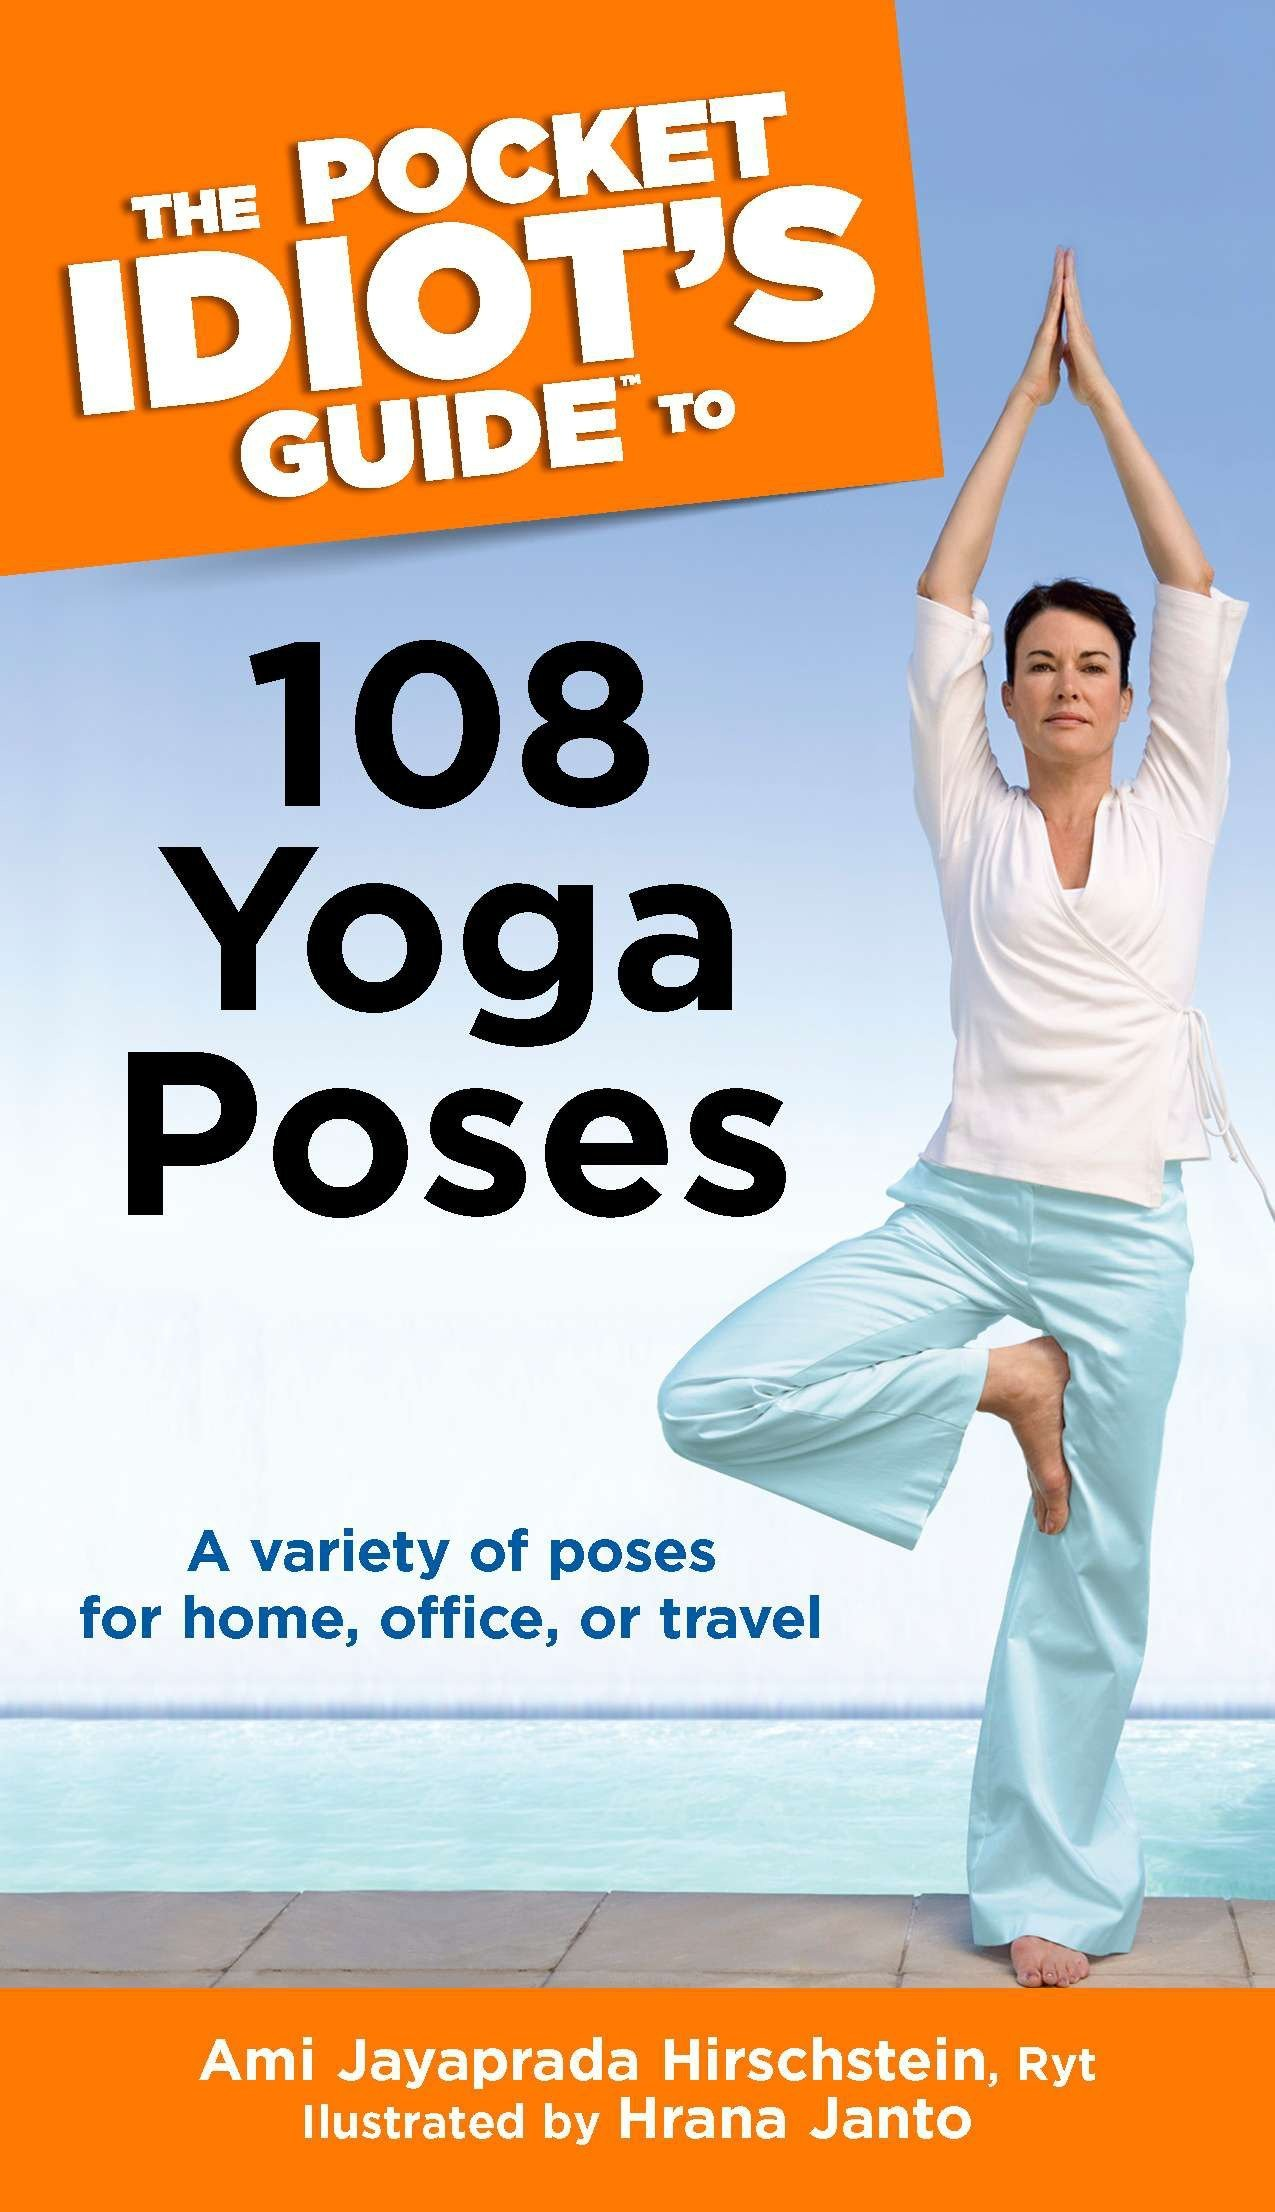 The Pocket Idiot's Guide to 108 Yoga Poses: A Variety of Poses for Home, Office, or Travel (Complete Idiot's Guide to) ebook